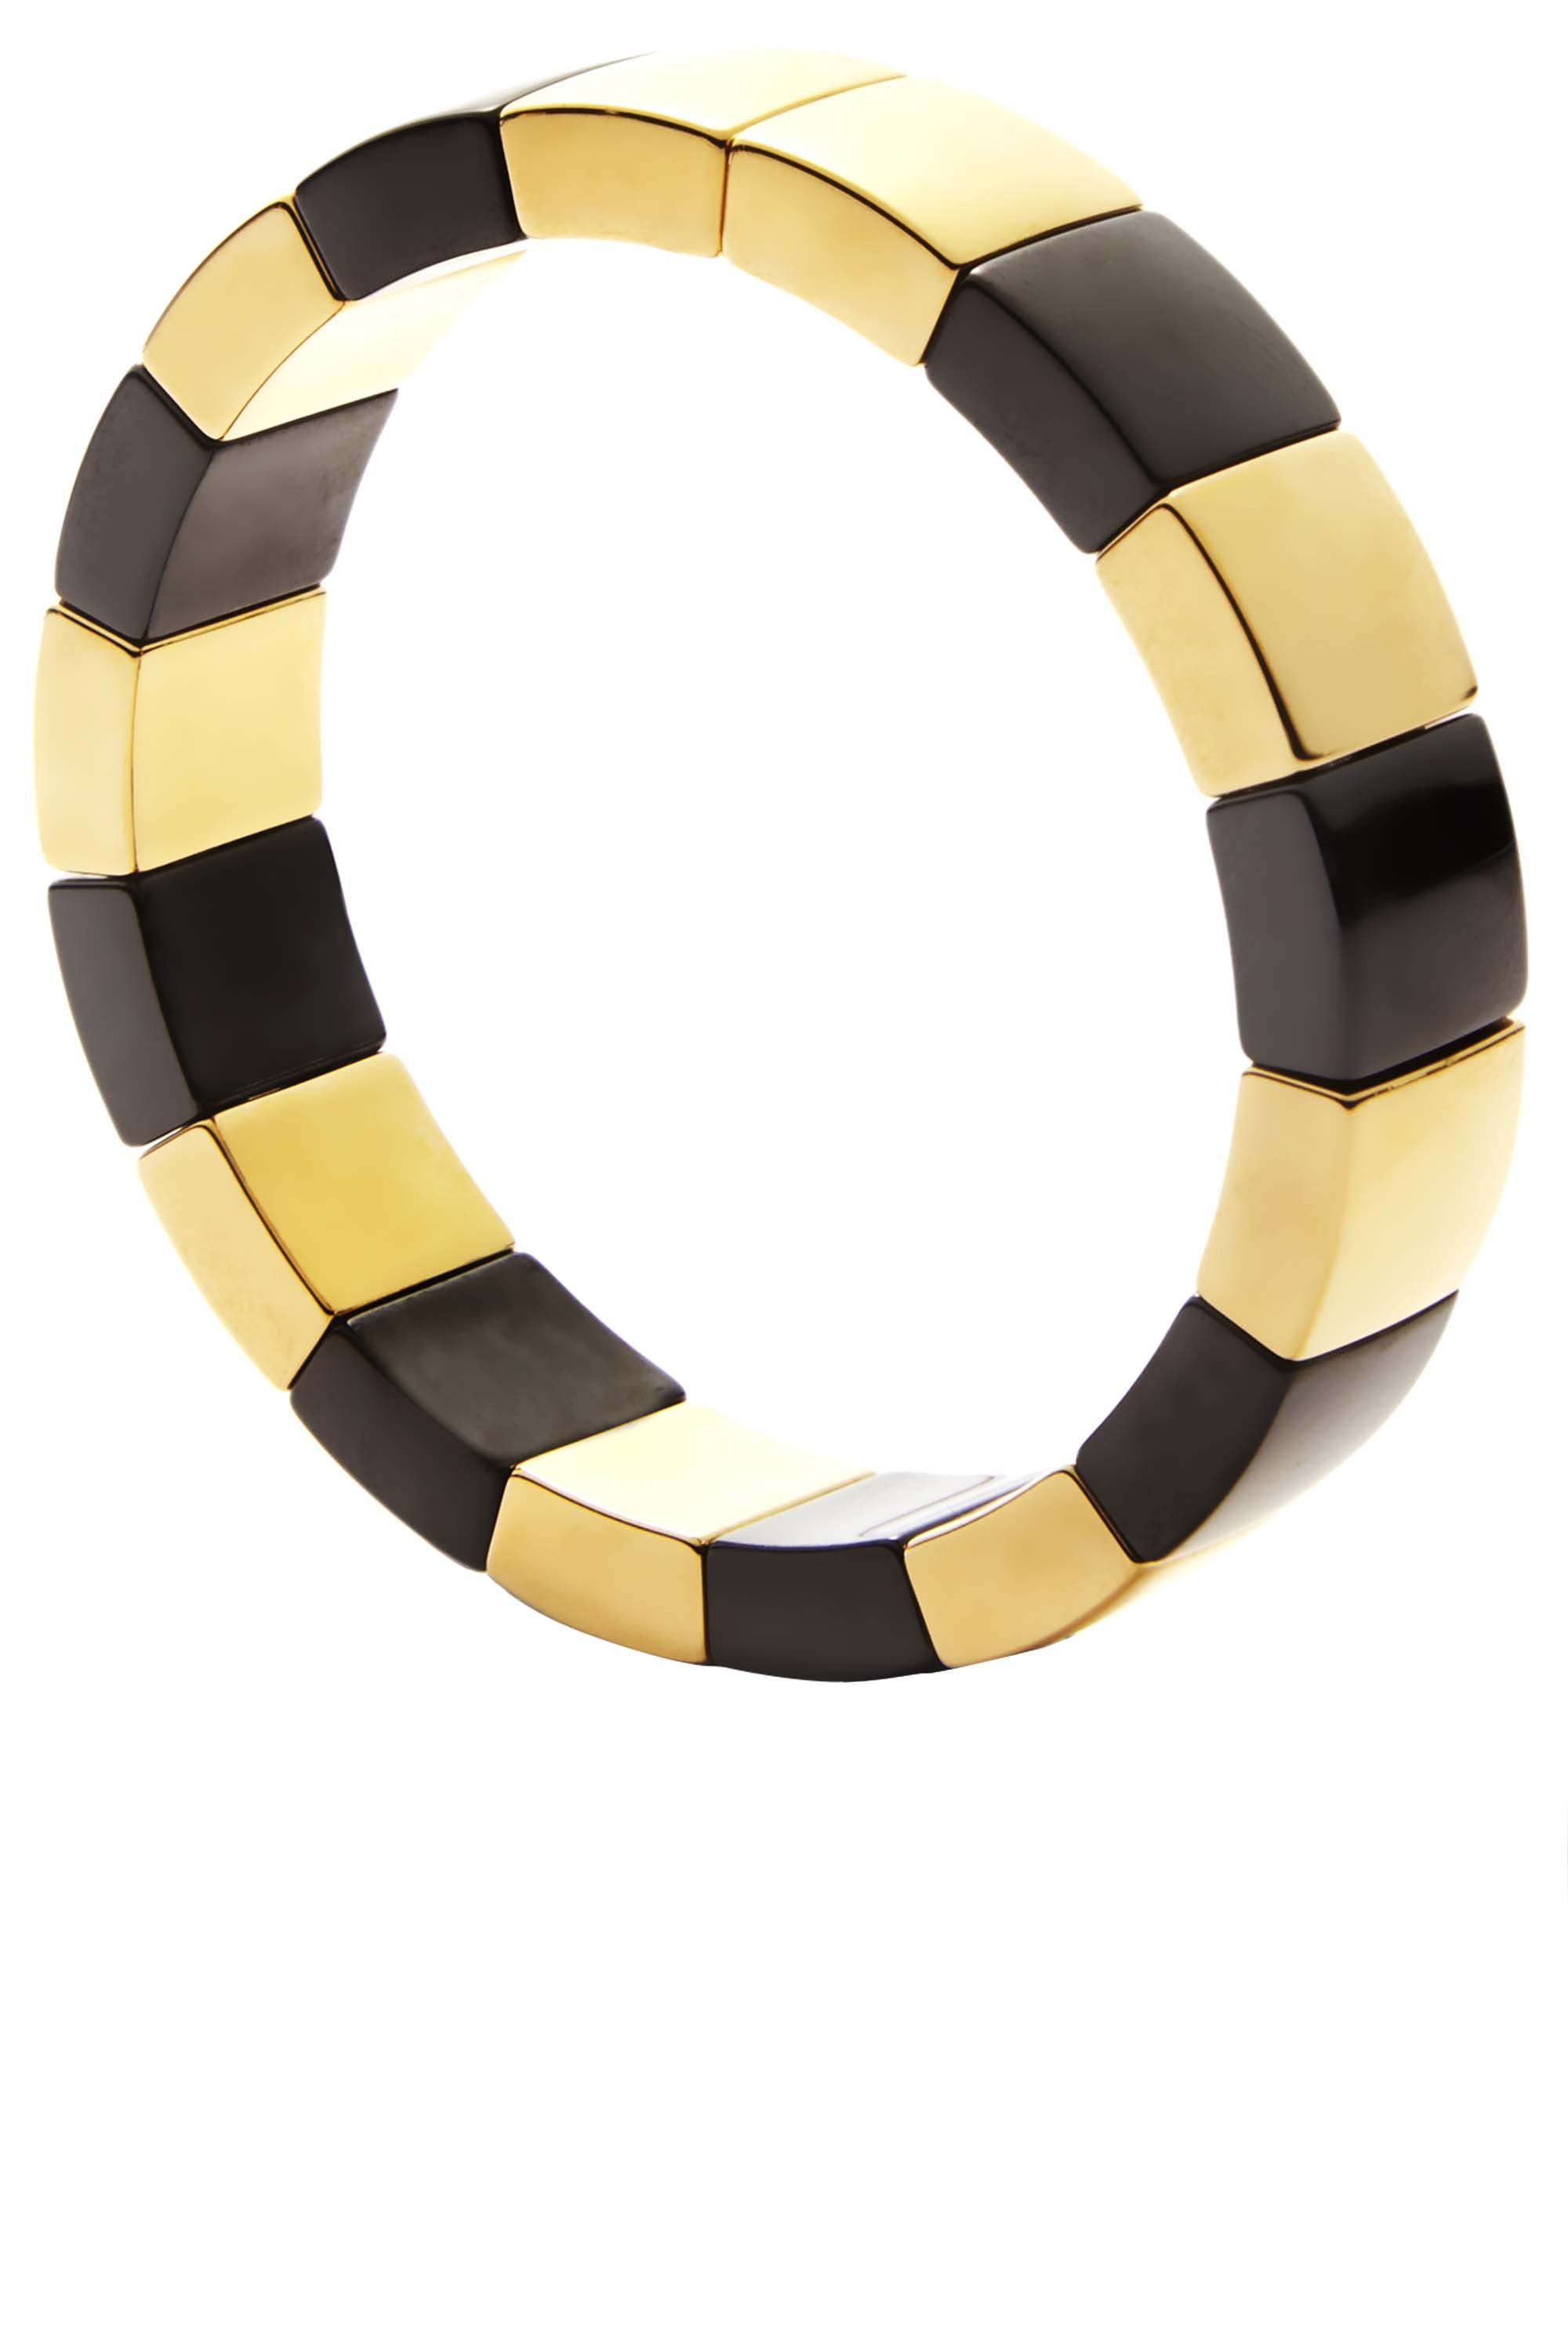 "<p><strong>Roberto Demeglio </strong>bracelet, $296, <a href=""http://www.robertodemegliousa.com/"" target=""_blank"">robertodemegliousa.com</a>. </p>"